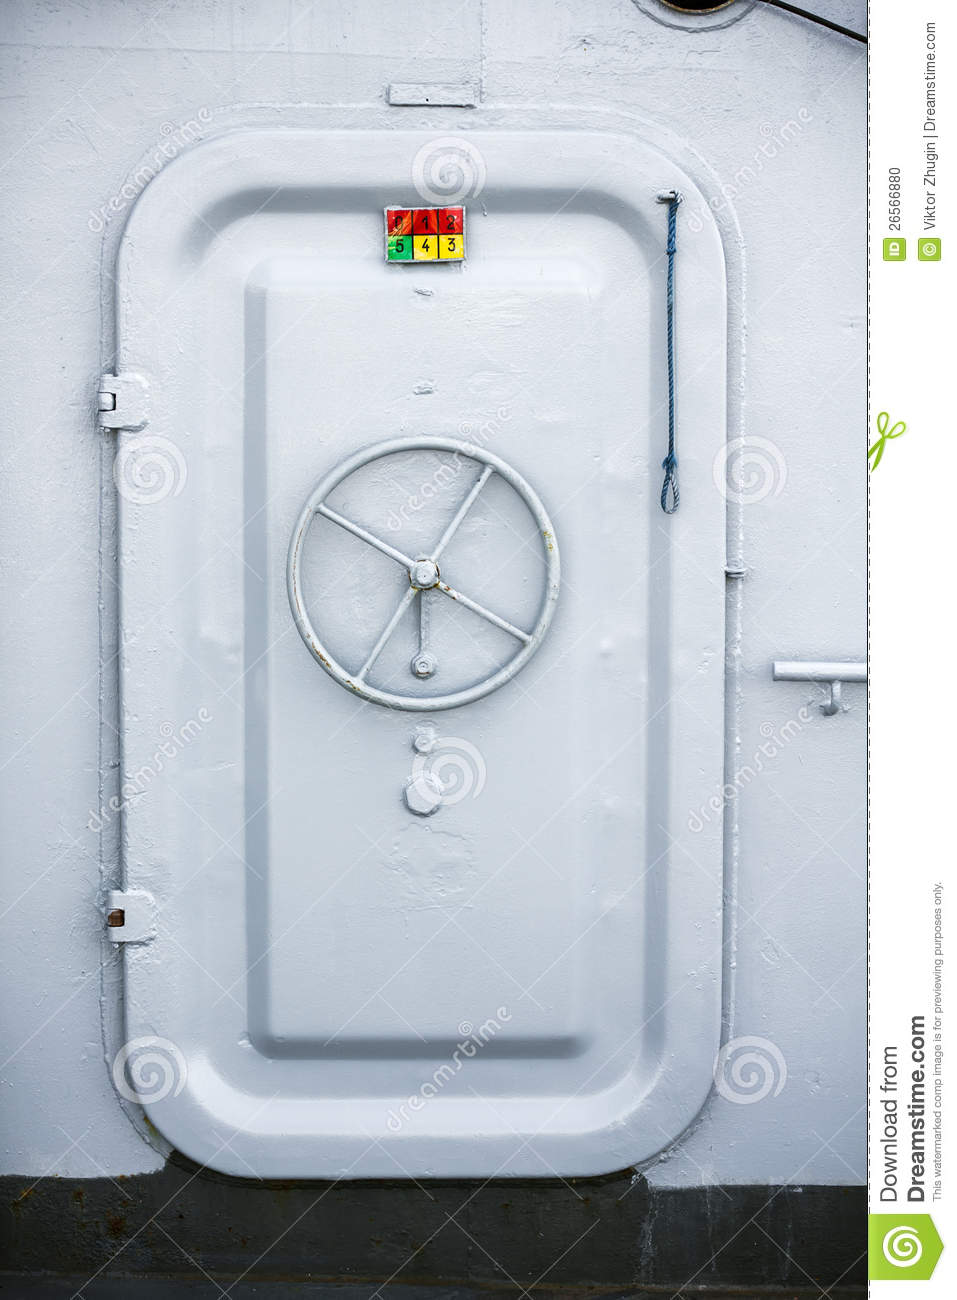 Ship Compartment Door Stock Photo - Image: 26566880